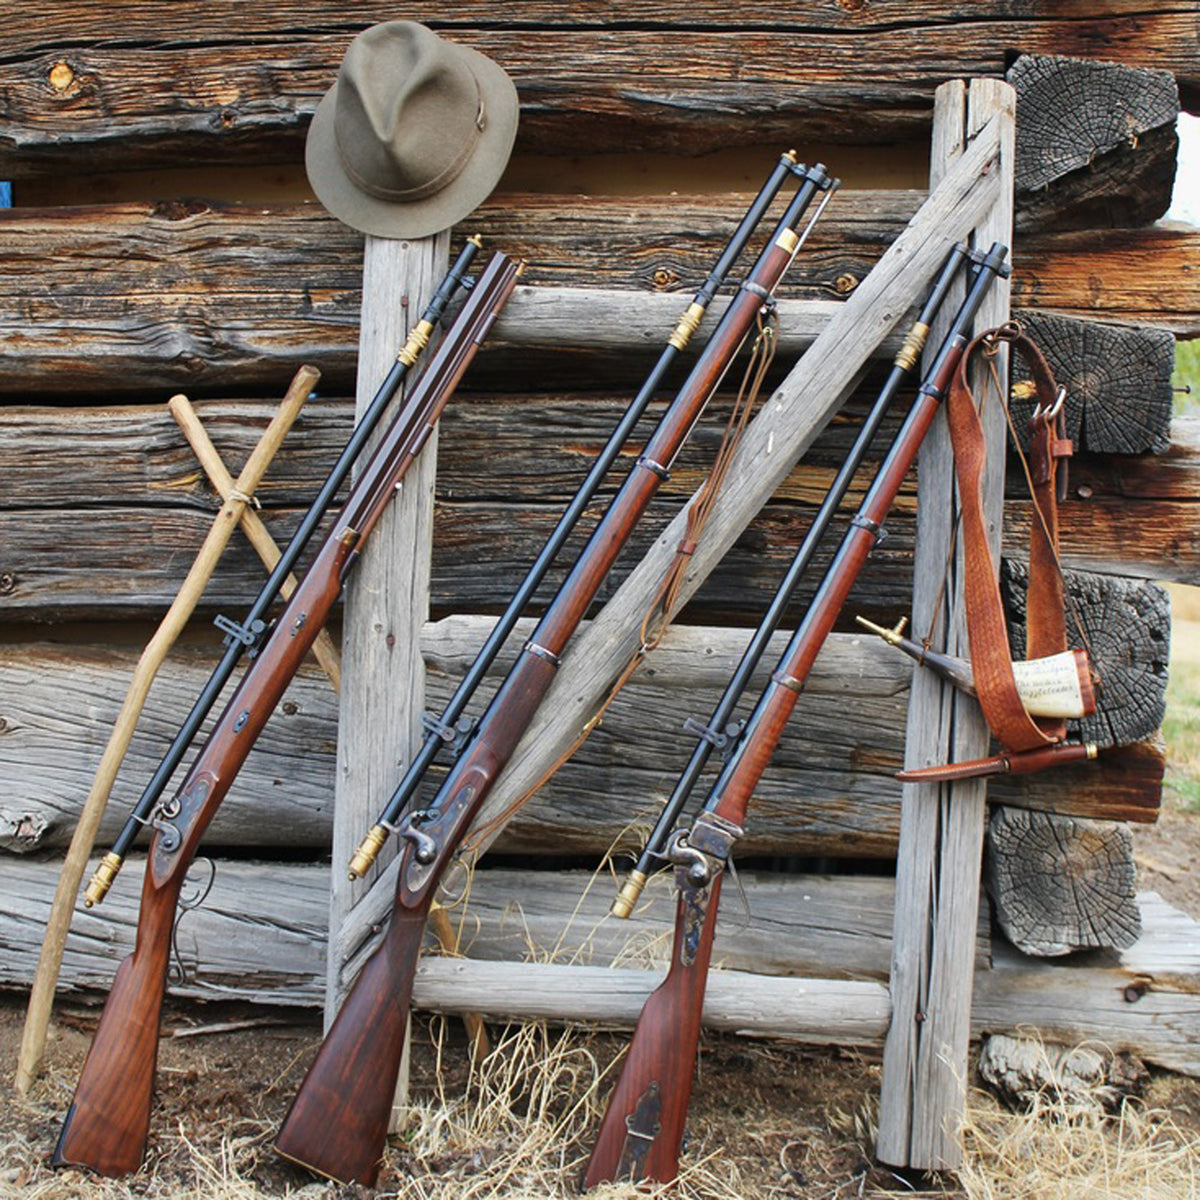 The 6X Long Malcolm Scope mounted on a variety of percussion rifles